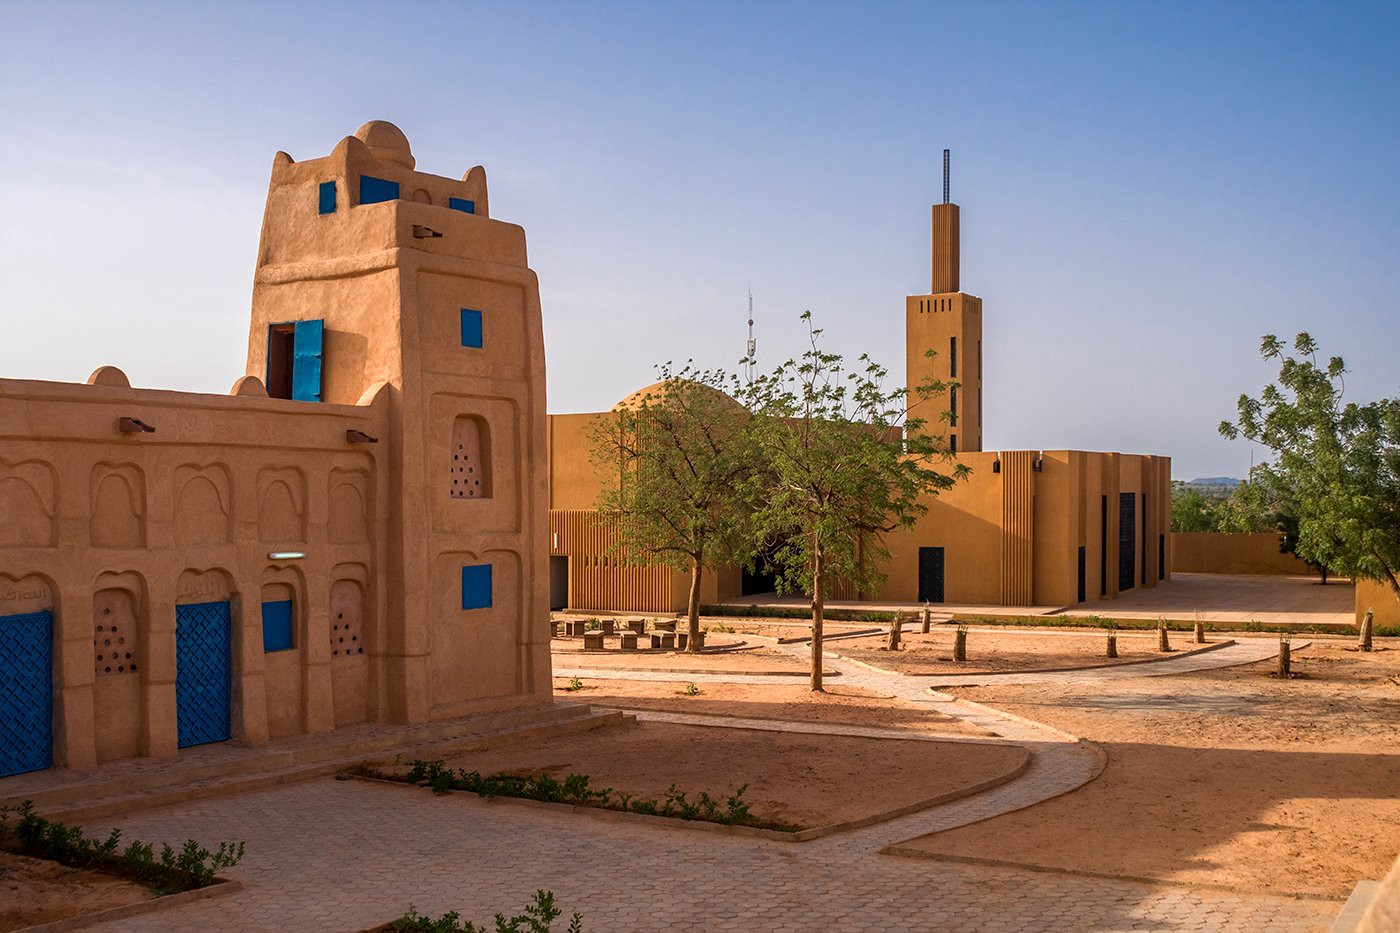 The Hikma: Religious and Secular Complex includes a 1,000-person mosque with worship spaces, a library, classrooms, reading and studying spaces, and a garden. The firm involved local women in the design process, resulting in additional rooms for literacy courses, meetings, and workshops. (Photo: p92, The Ideal City)